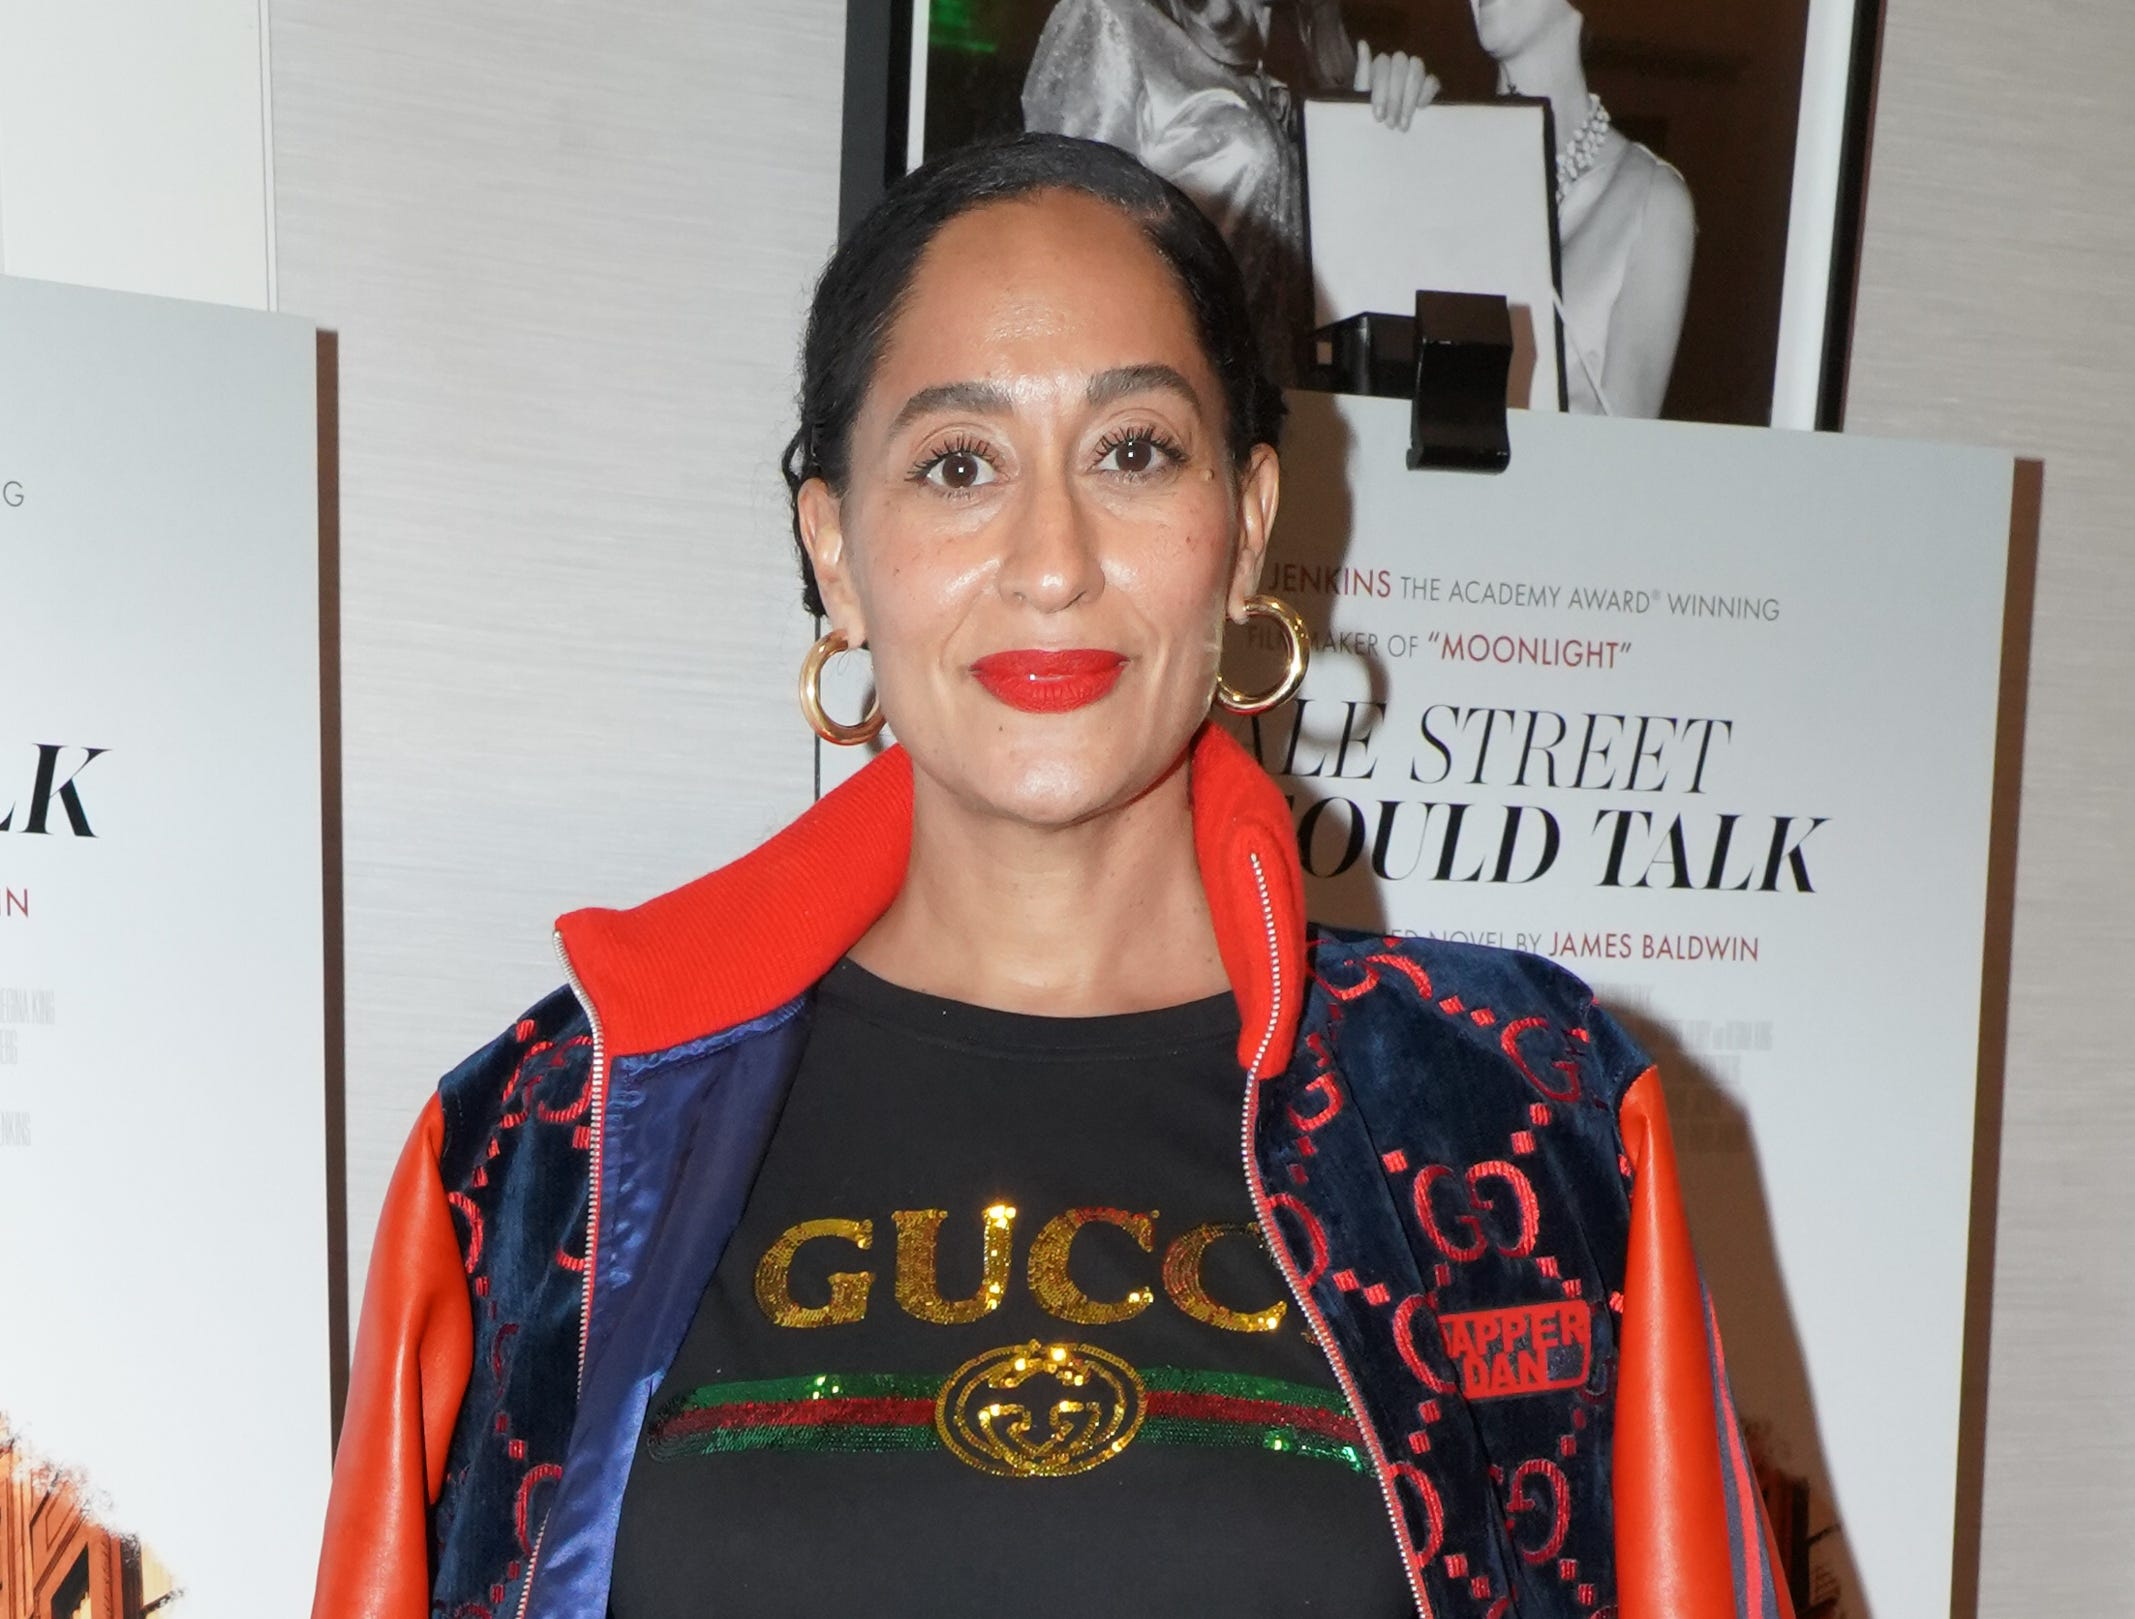 WEST HOLLYWOOD, CALIFORNIA - JANUARY 08: Tracee Ellis Ross attends a screening of 'If Beale Street Could Talk' at The London Hotel on January 08, 2019 in West Hollywood, California. (Photo by Rachel Luna/Getty Images) ORG XMIT: 775278674 ORIG FILE ID: 1091670236